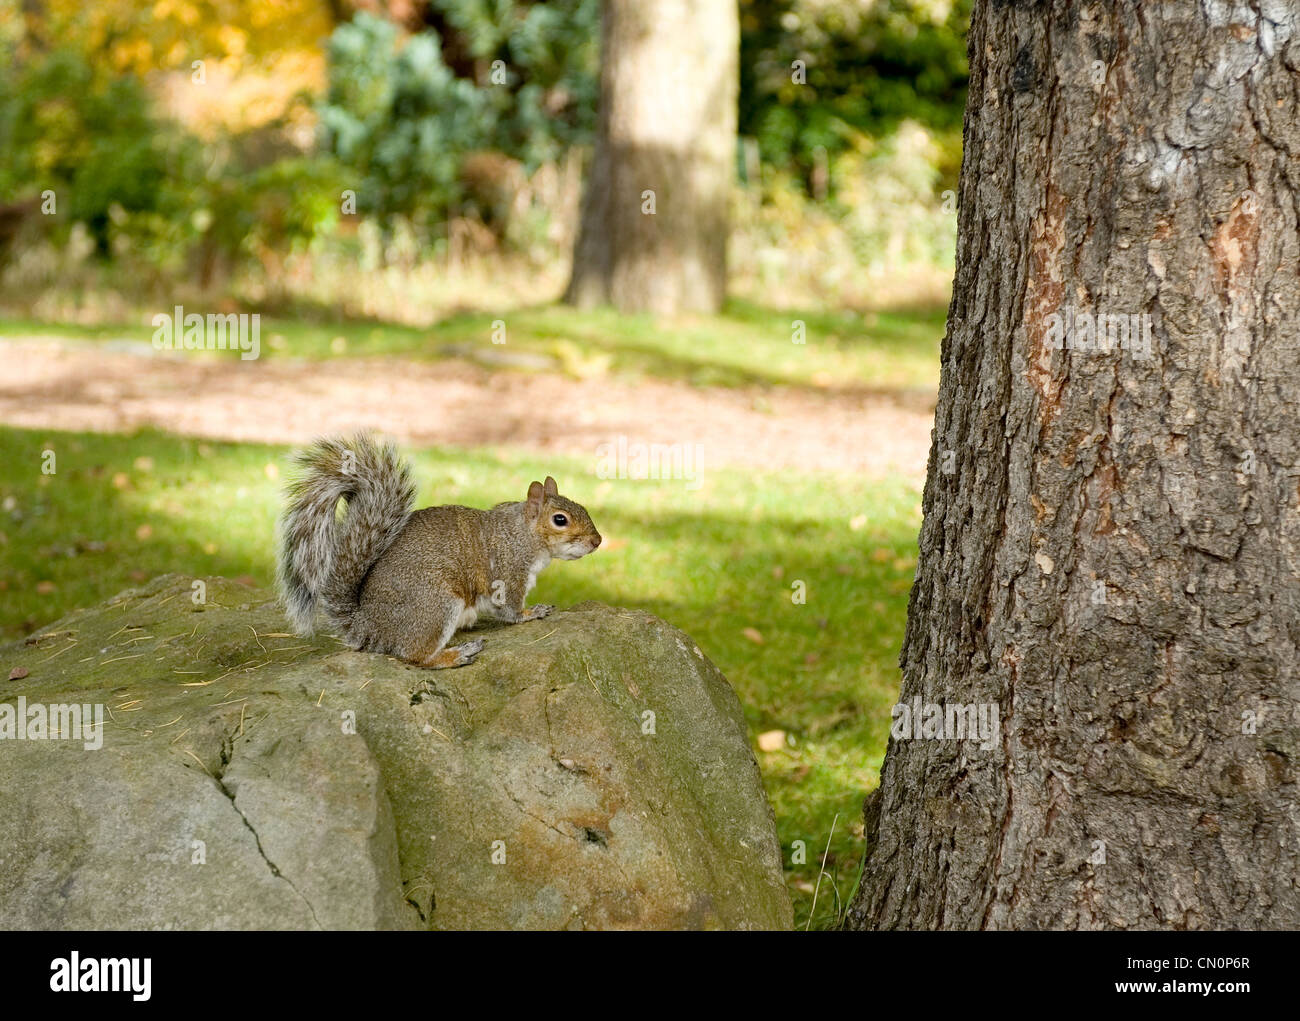 A squirrel on autumn leaves beside a tree in the park looks towards the camera - Stock Image